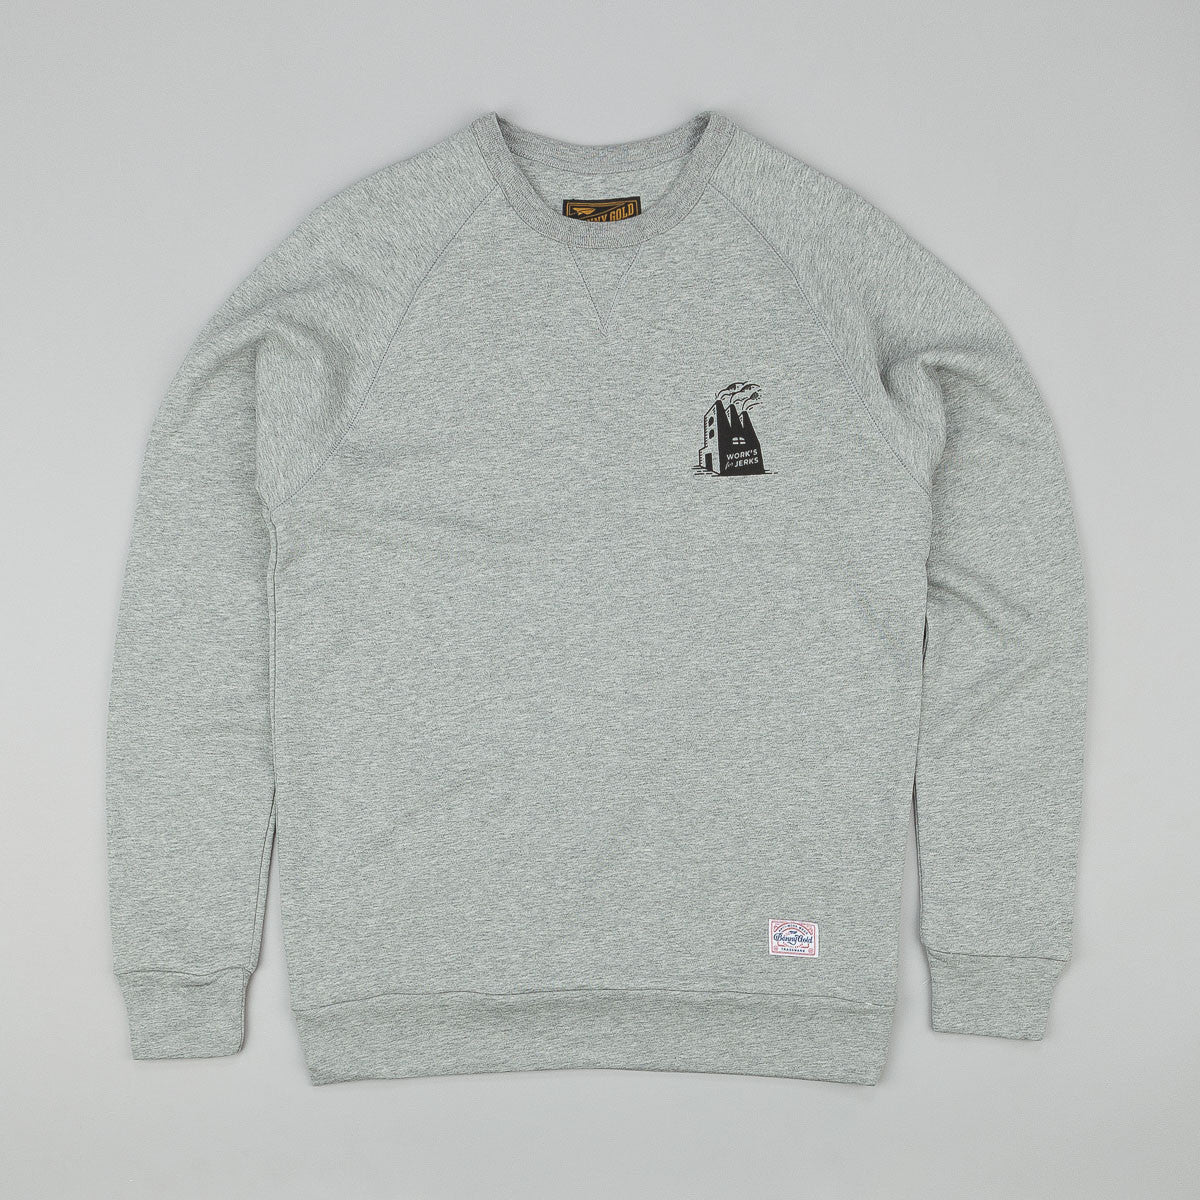 Benny Gold Factory Premium French Terry Crew Neck Sweat